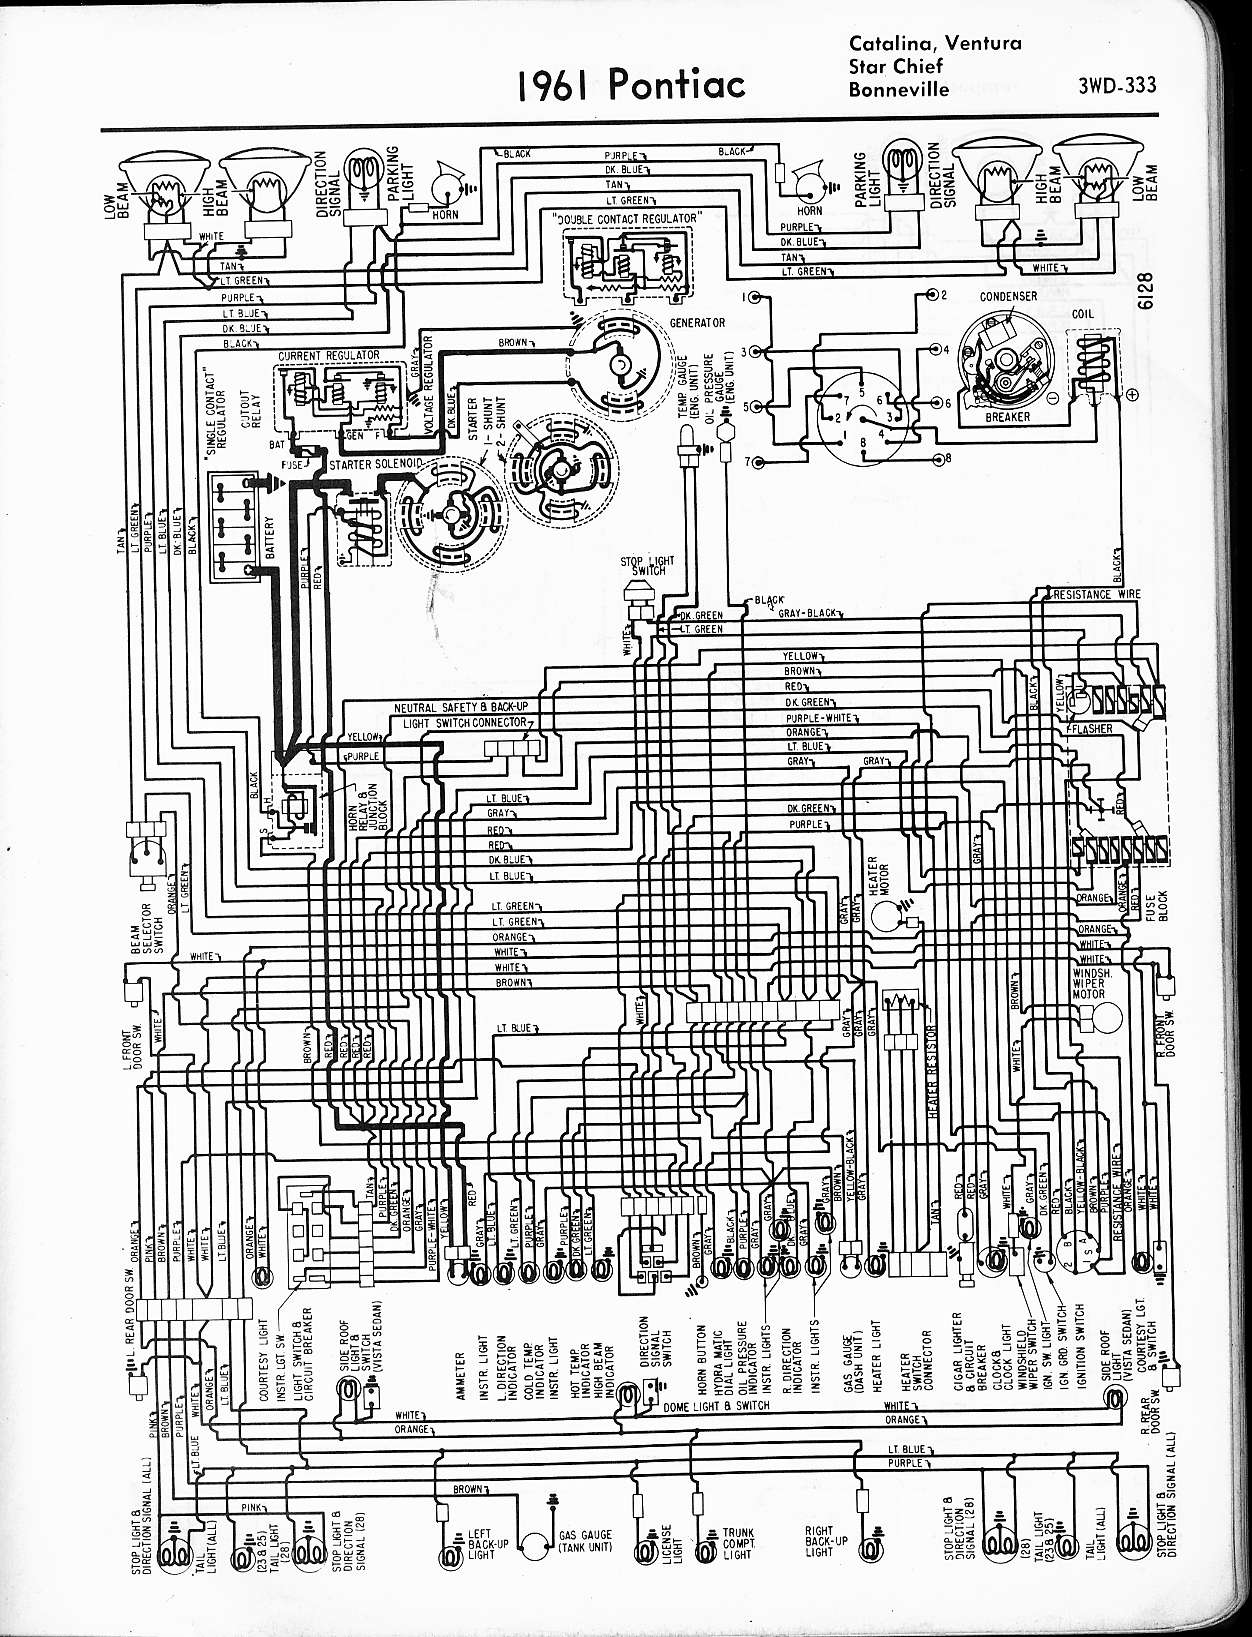 hight resolution of 1961 catalina star chief ventura bonneville wiring